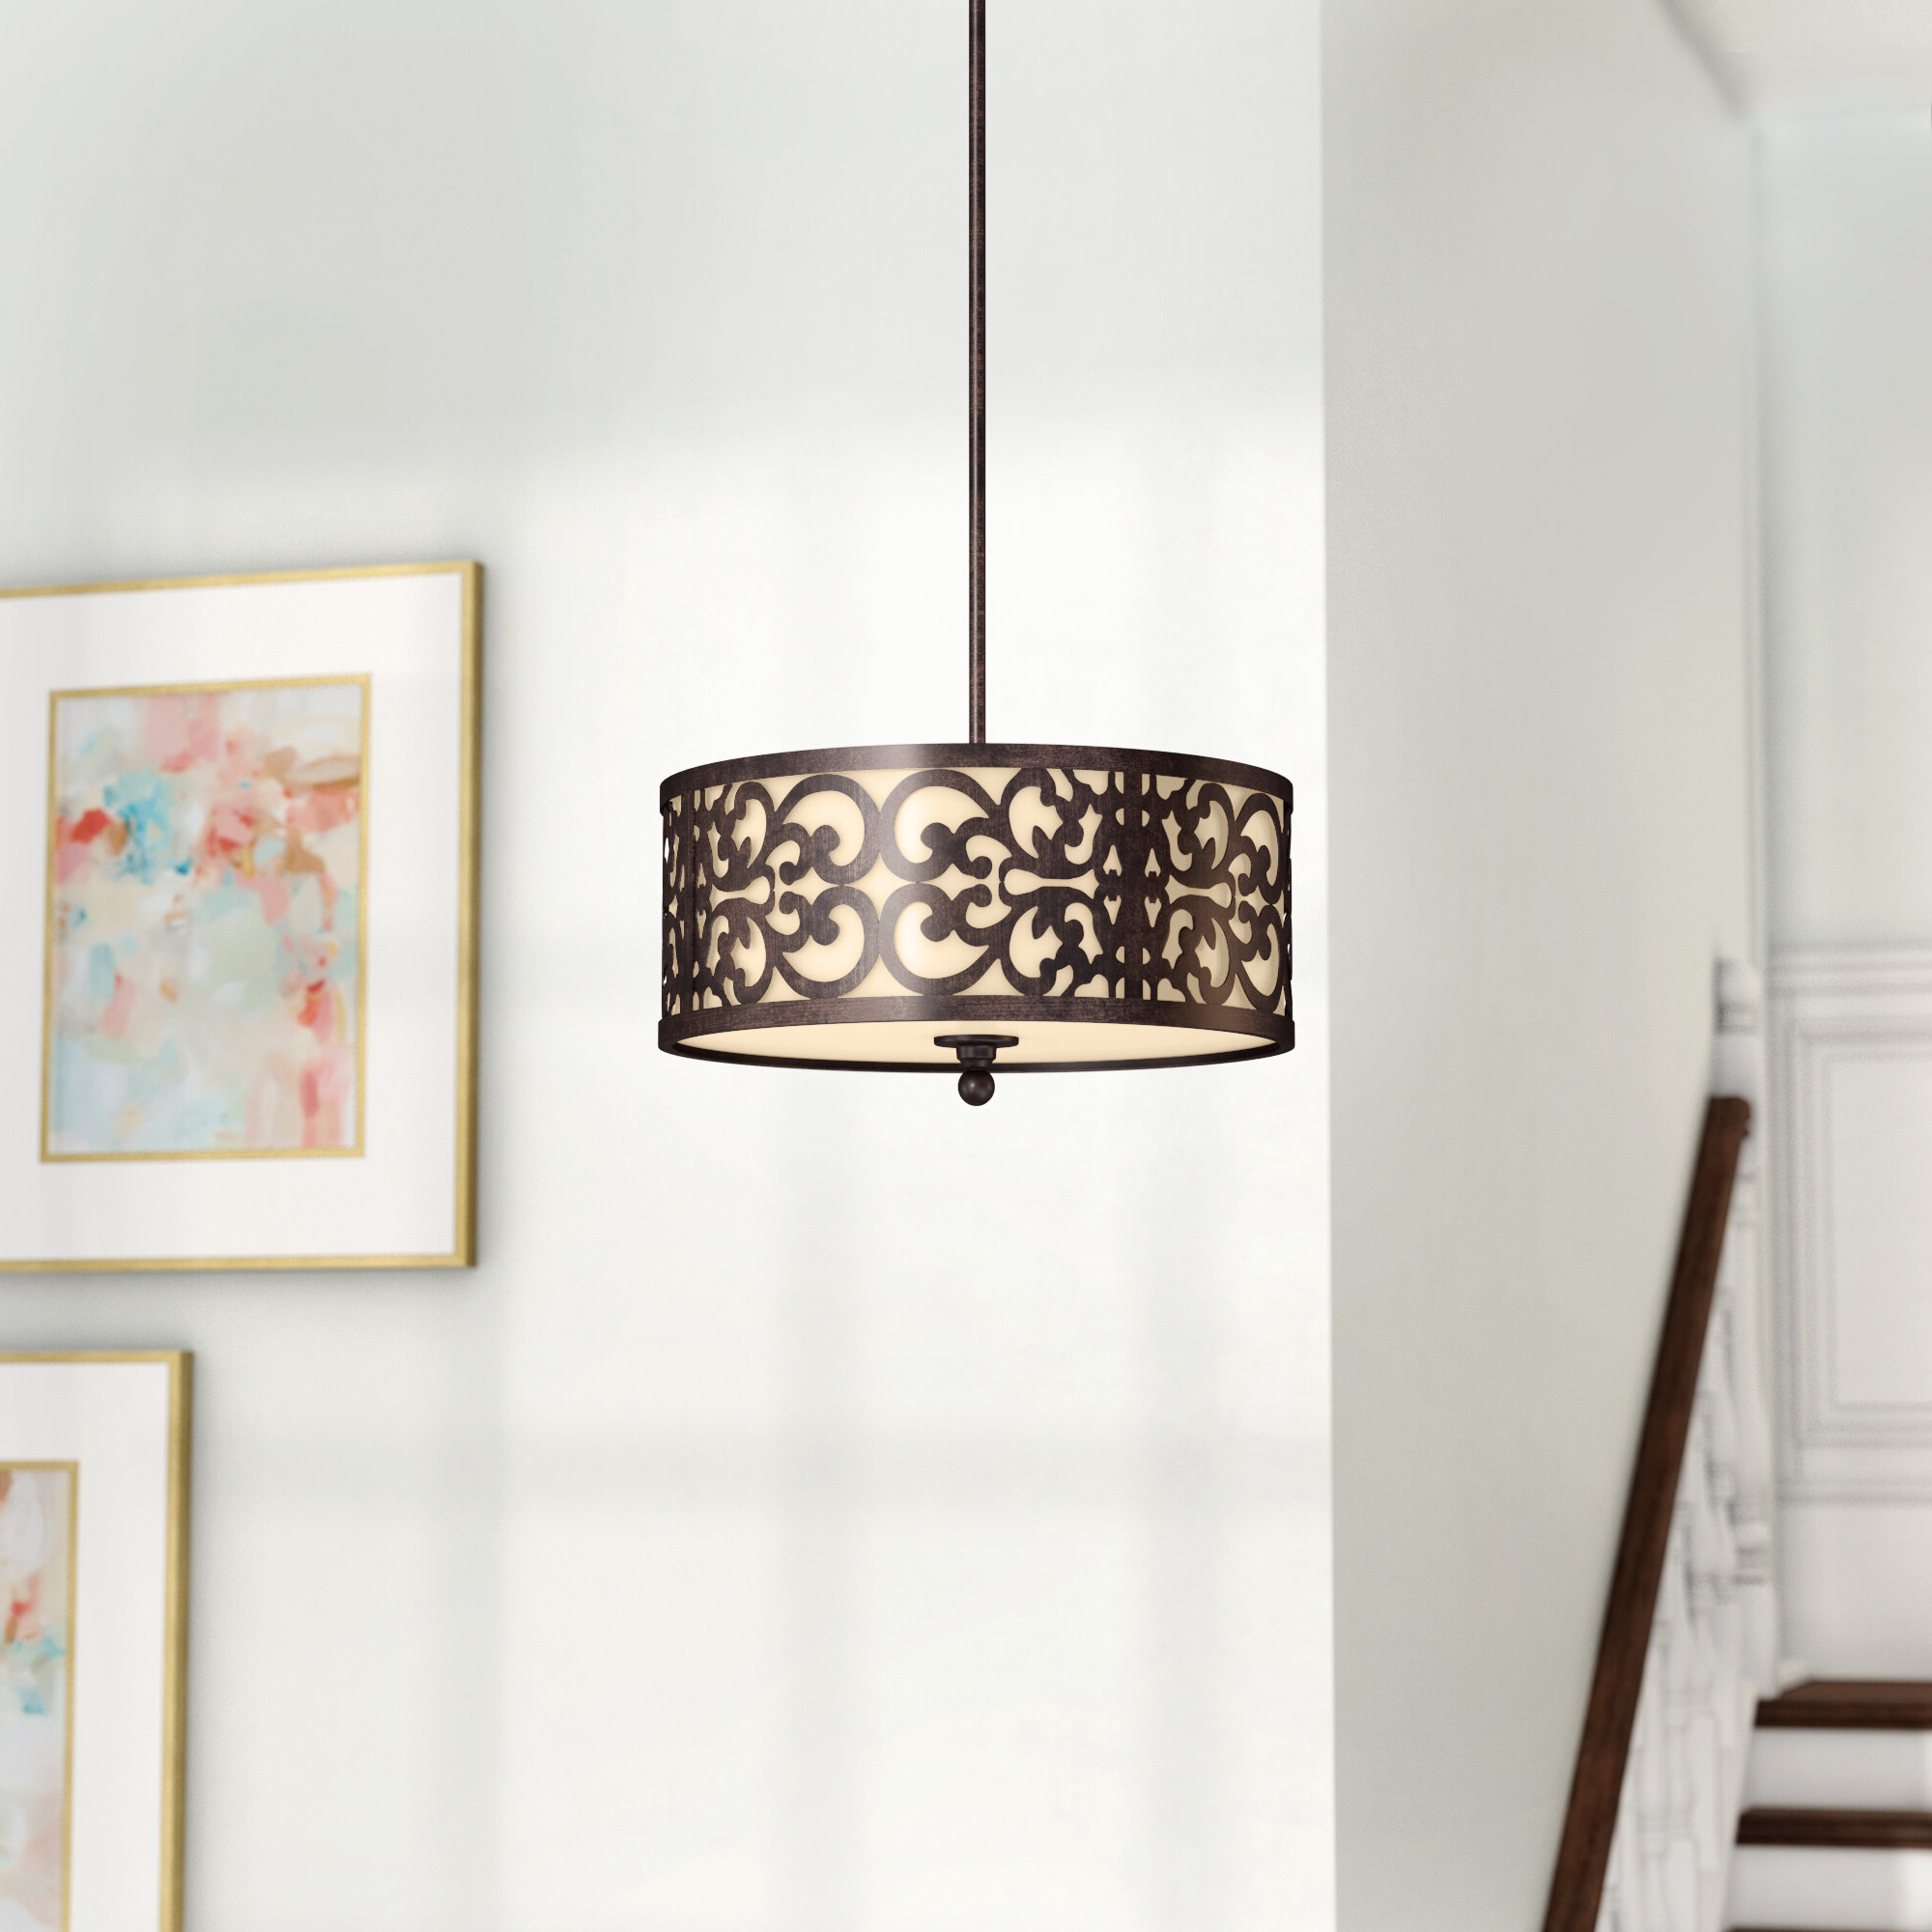 [%Fleur De Lis Living Pendant Lighting Sale – Up To 65% Off For Well Known Willems 1 Light Single Drum Pendants|Willems 1 Light Single Drum Pendants Throughout 2019 Fleur De Lis Living Pendant Lighting Sale – Up To 65% Off|Favorite Willems 1 Light Single Drum Pendants Intended For Fleur De Lis Living Pendant Lighting Sale – Up To 65% Off|Favorite Fleur De Lis Living Pendant Lighting Sale – Up To 65% Off Throughout Willems 1 Light Single Drum Pendants%] (View 1 of 20)